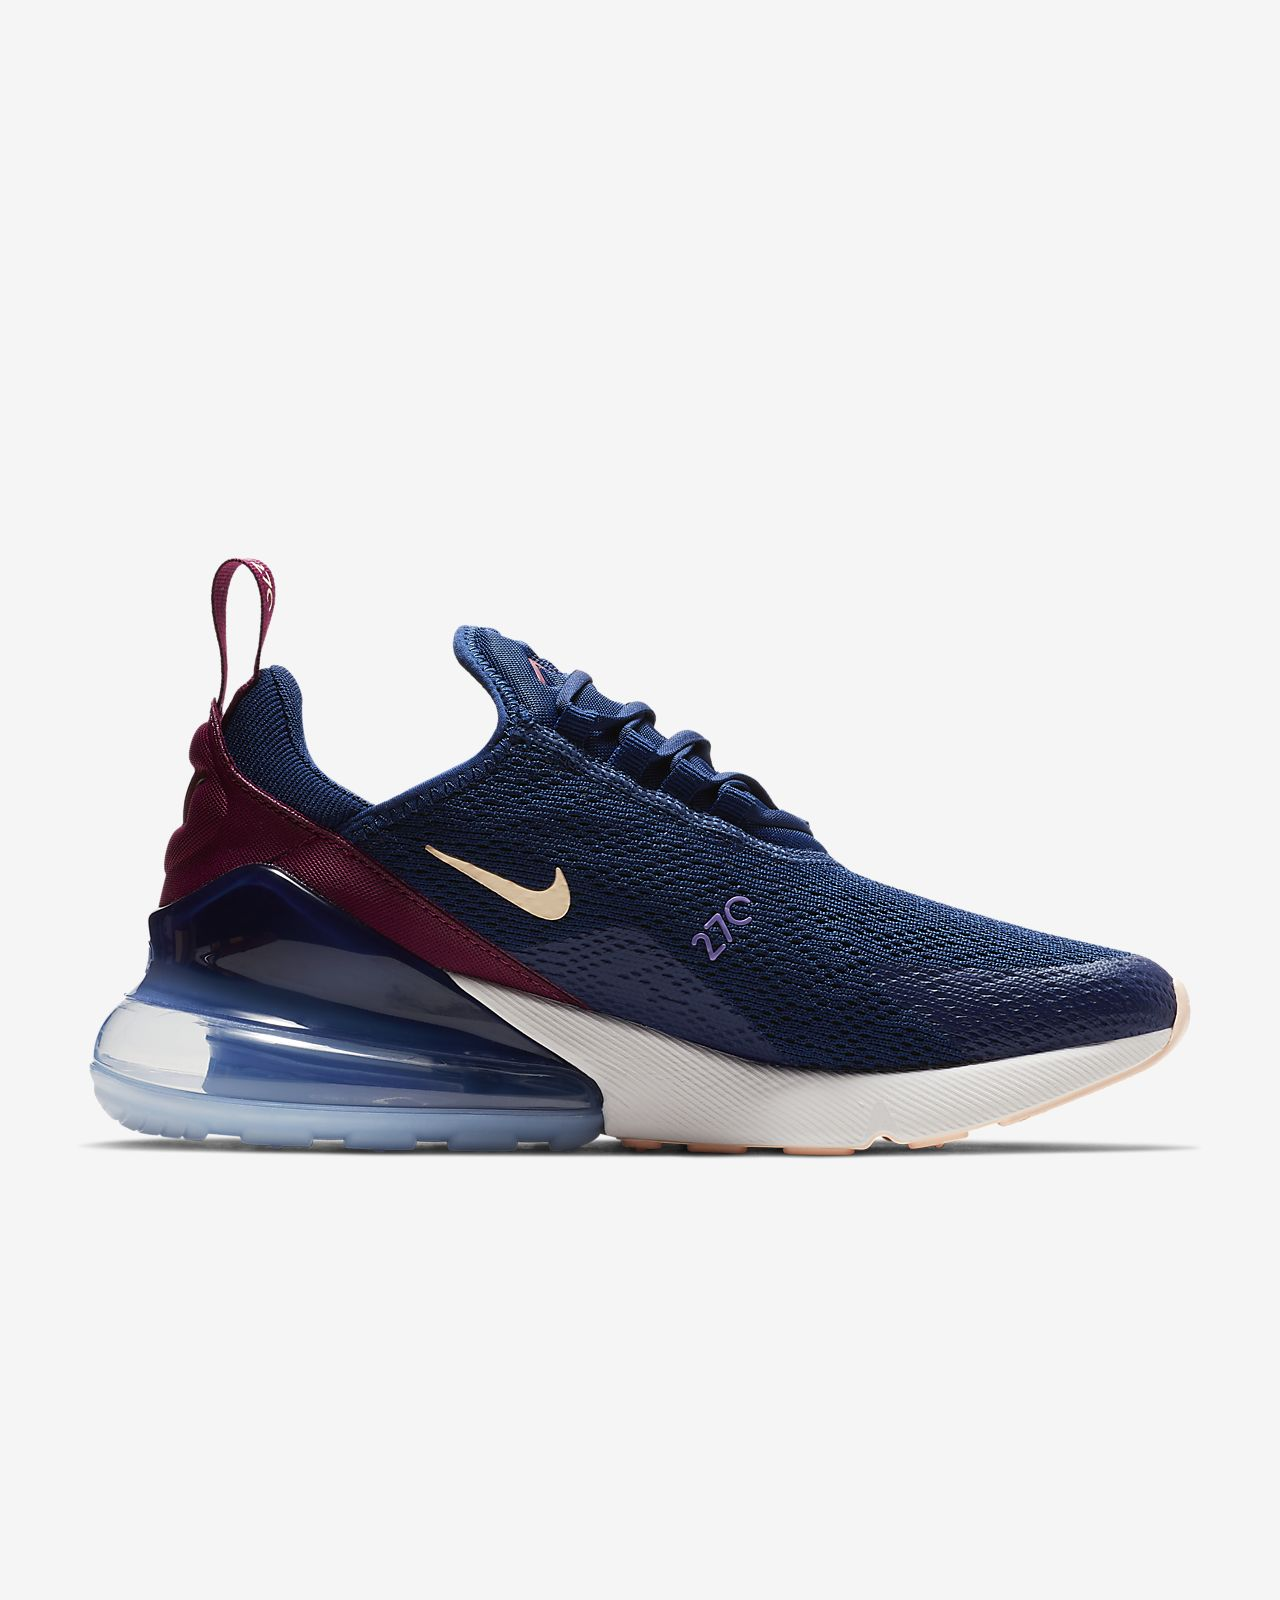 20a587b5a3 Nike Air Max 270 Women's Shoe. Nike.com CH